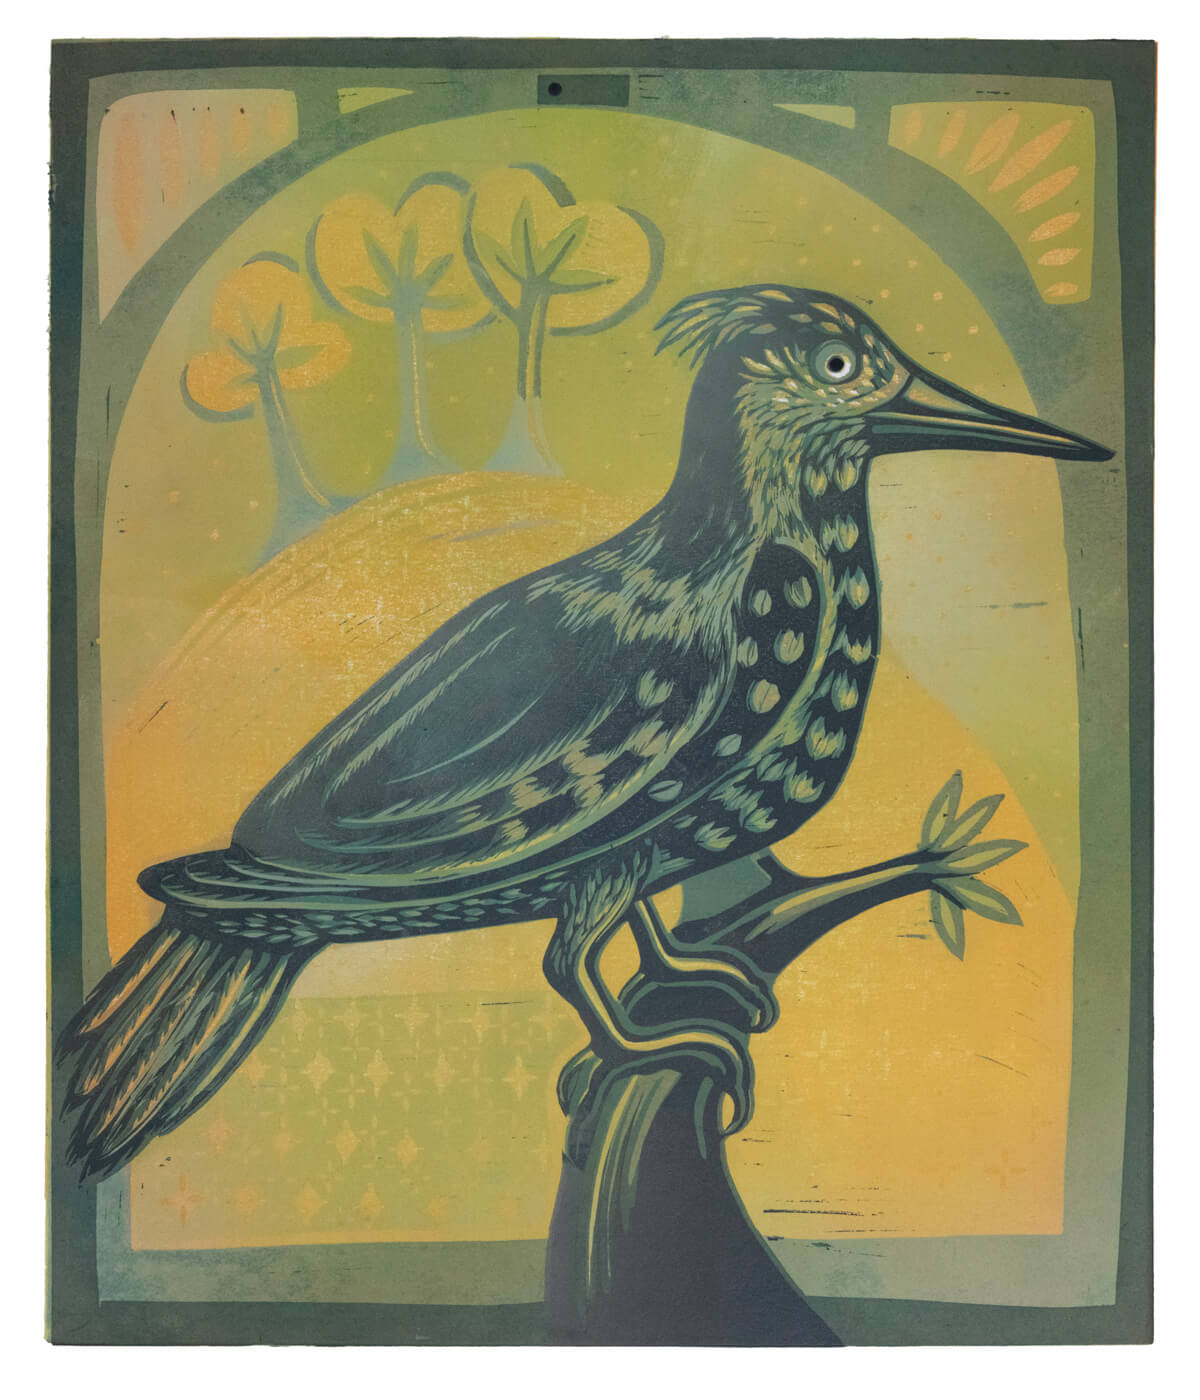 Mrs Griffiths' Lark in Yellow, a linocut print by Sarah Kirby